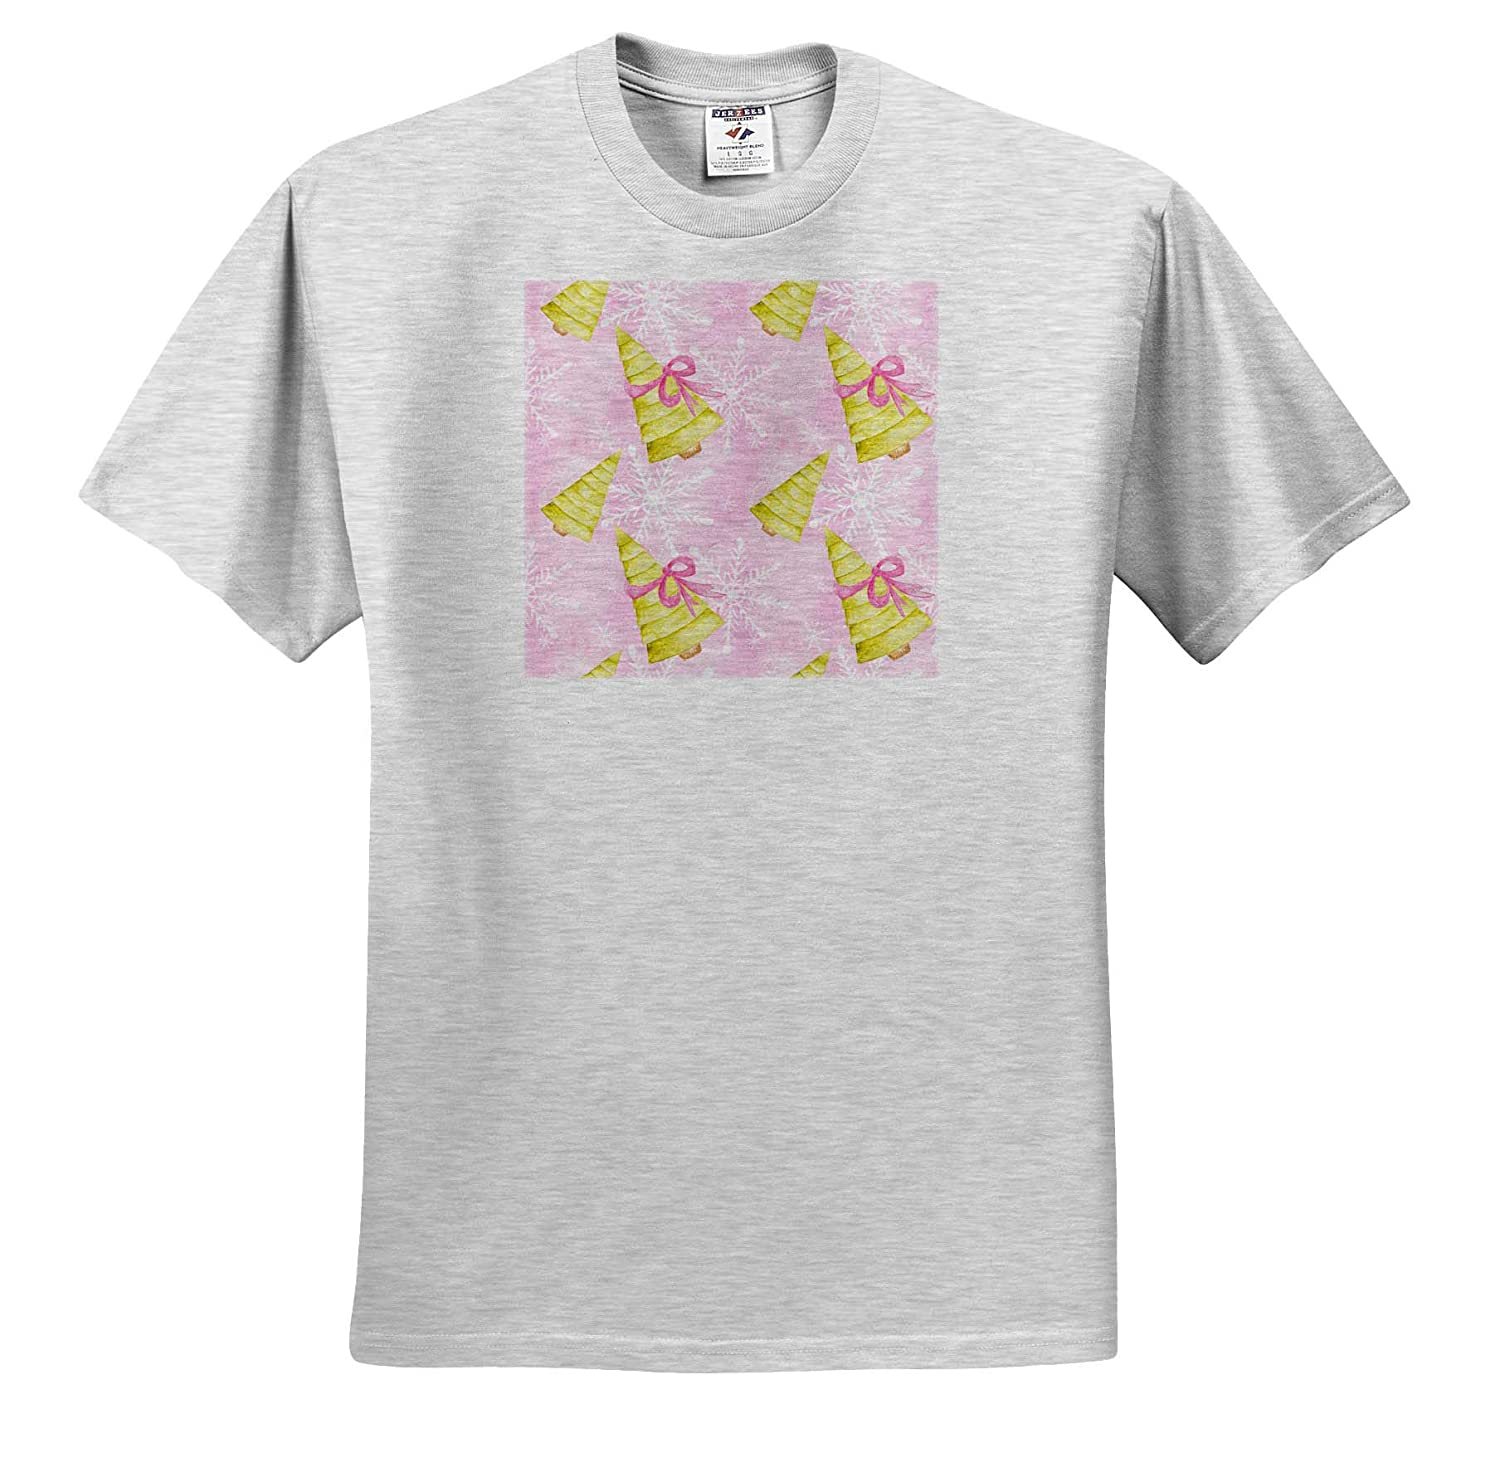 Christmas Adult T-Shirt XL ts/_318510 Chic Light Green Christmas Trees with Pink Bows Pattern 3dRose Anne Marie Baugh